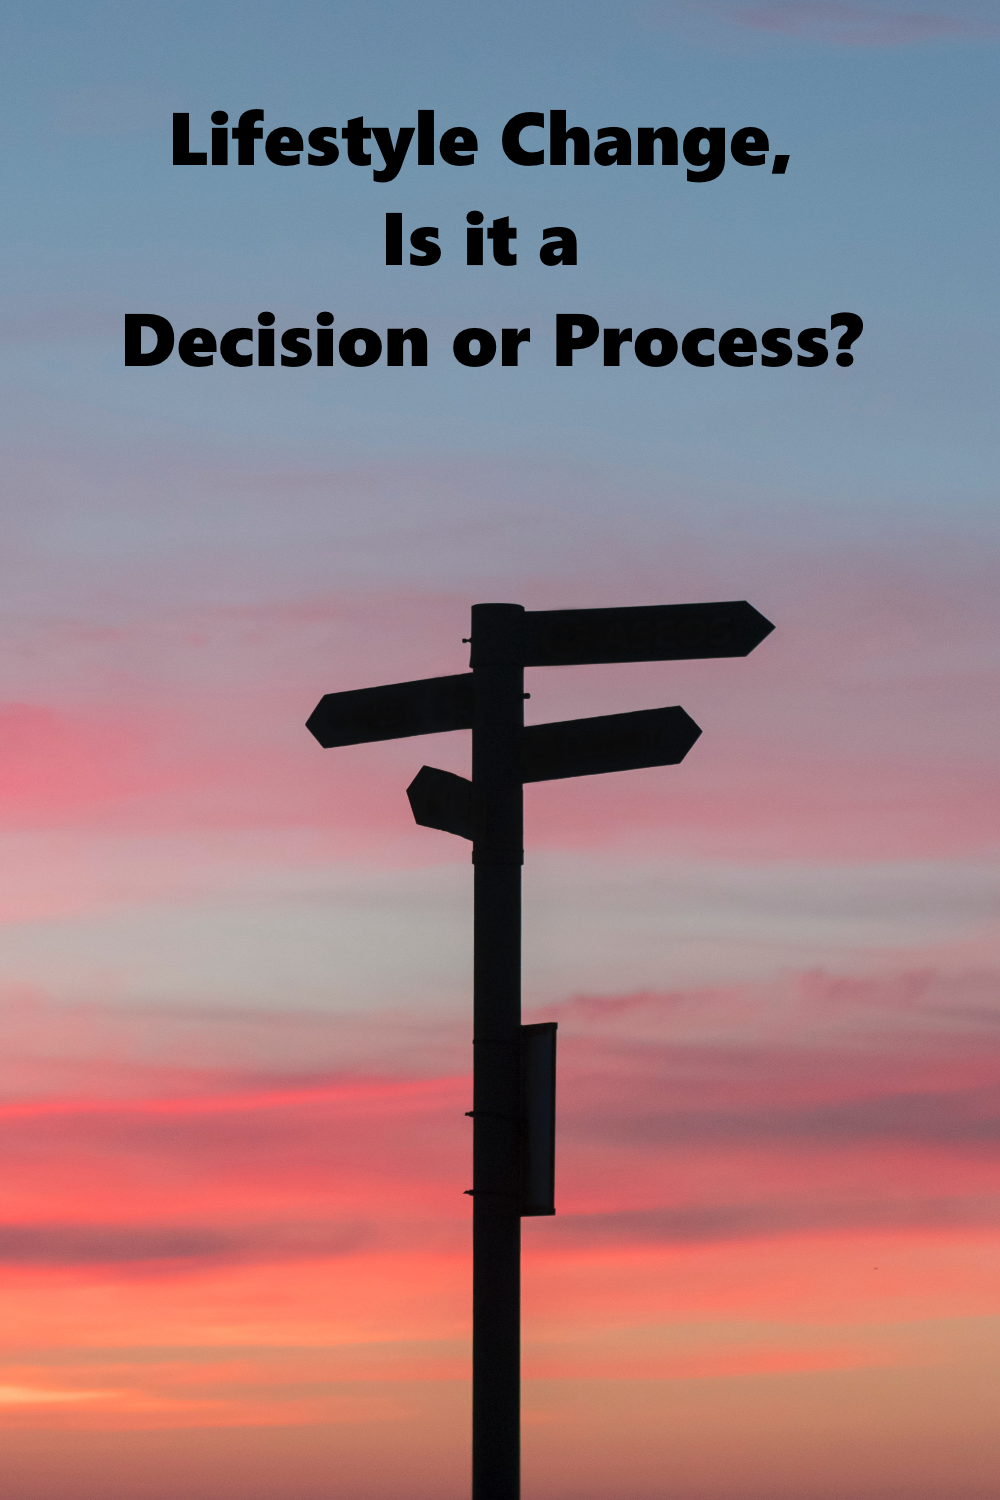 Lifestyle Change - Is it a Decision or Process?